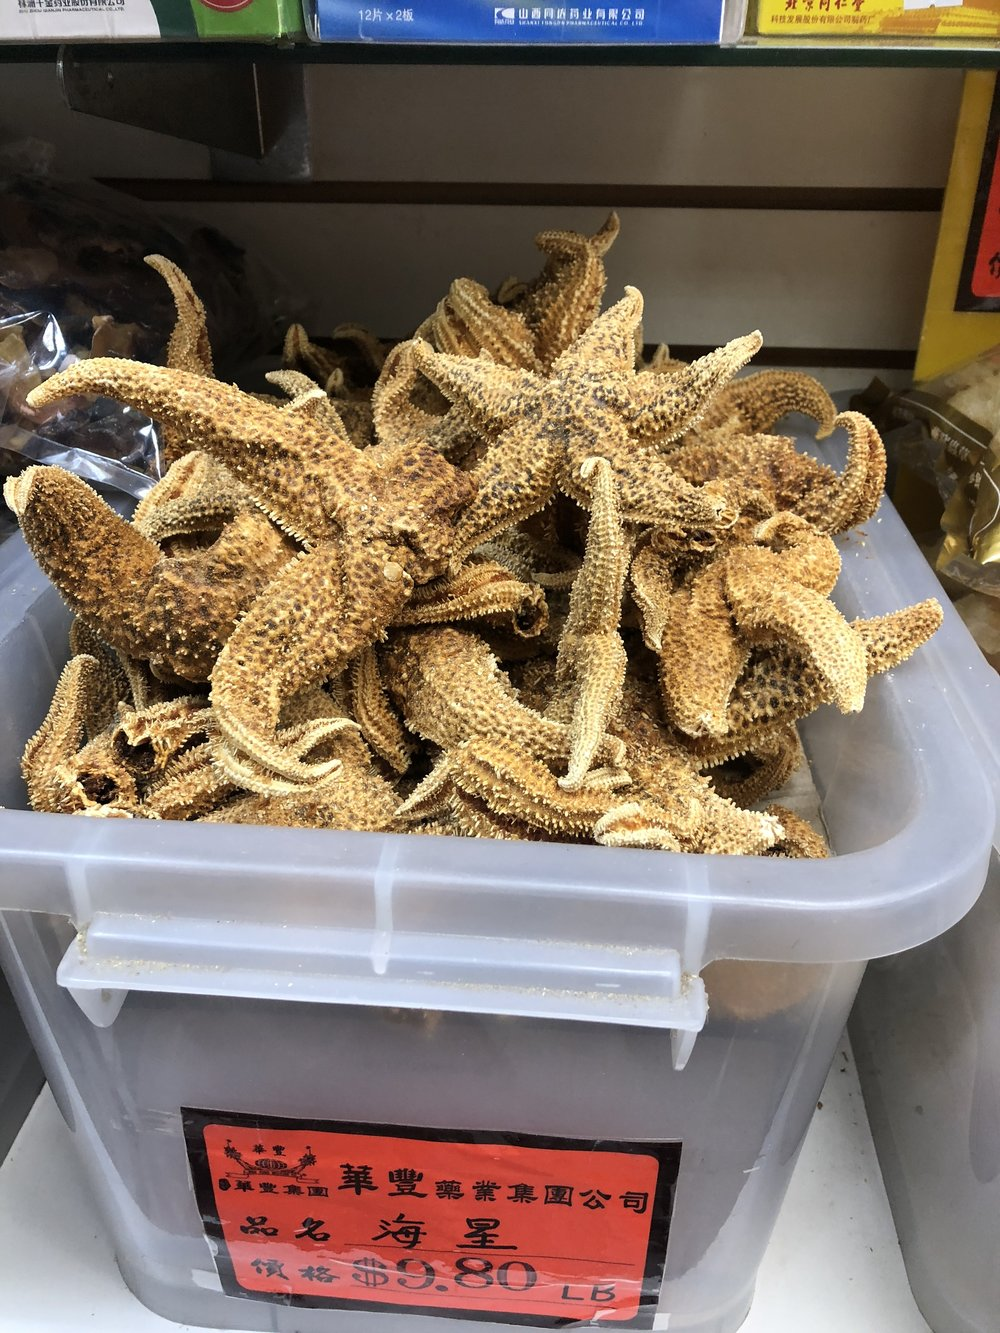 Dried starfish in a Chinese medicine store. Flushing, Queens.